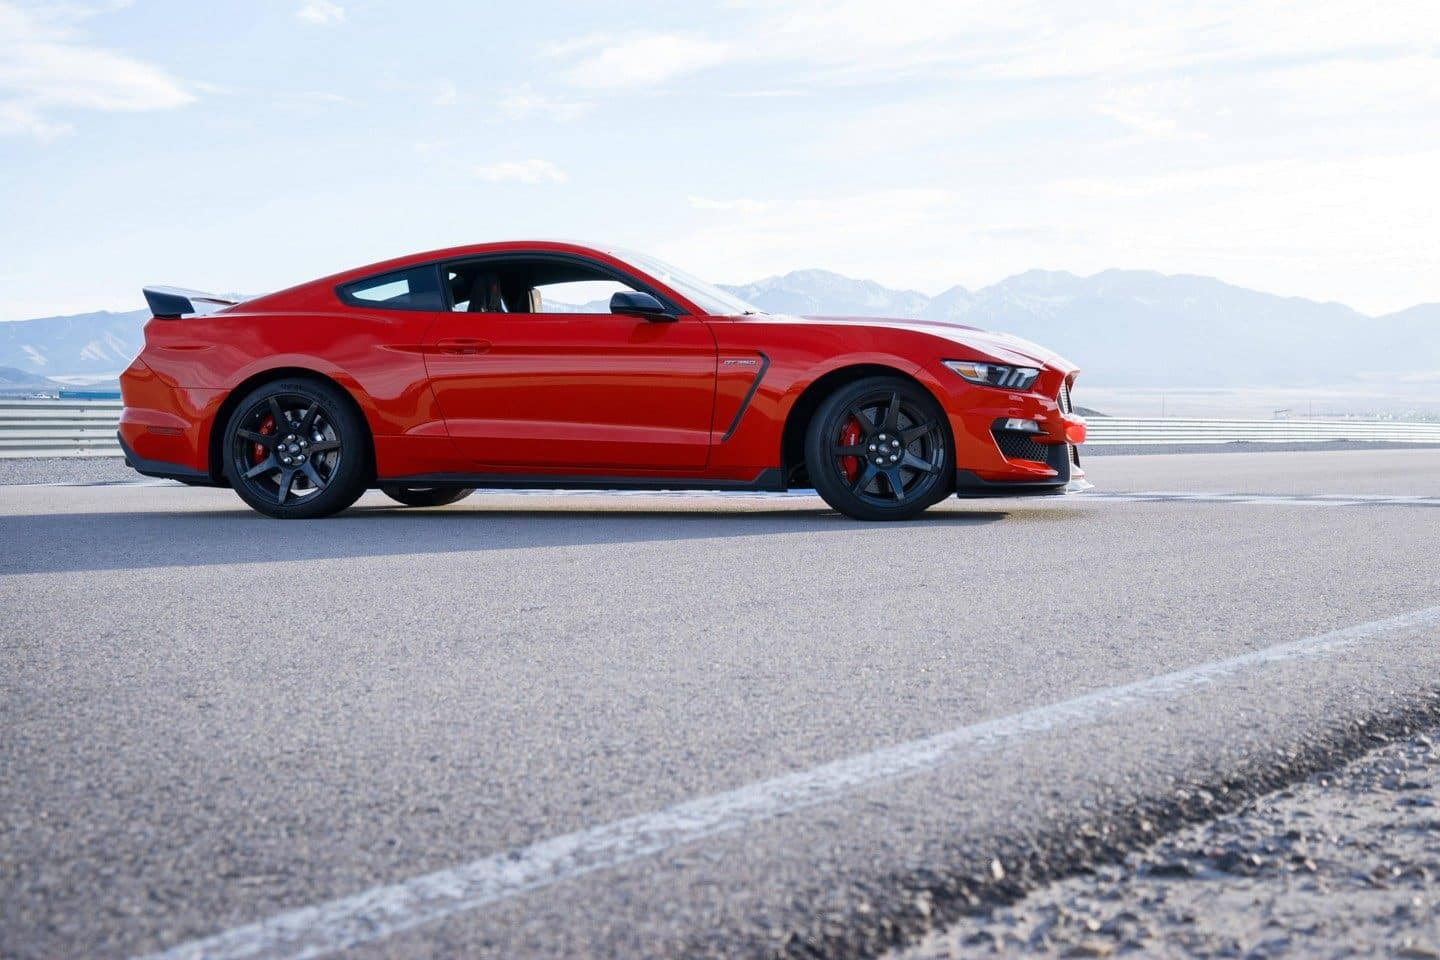 Ford Mustang Shelby Gt350 Vs. Chevy Camaro Zl1 2021 Chevy Camaro Zl1 Rims, Used, Wheels